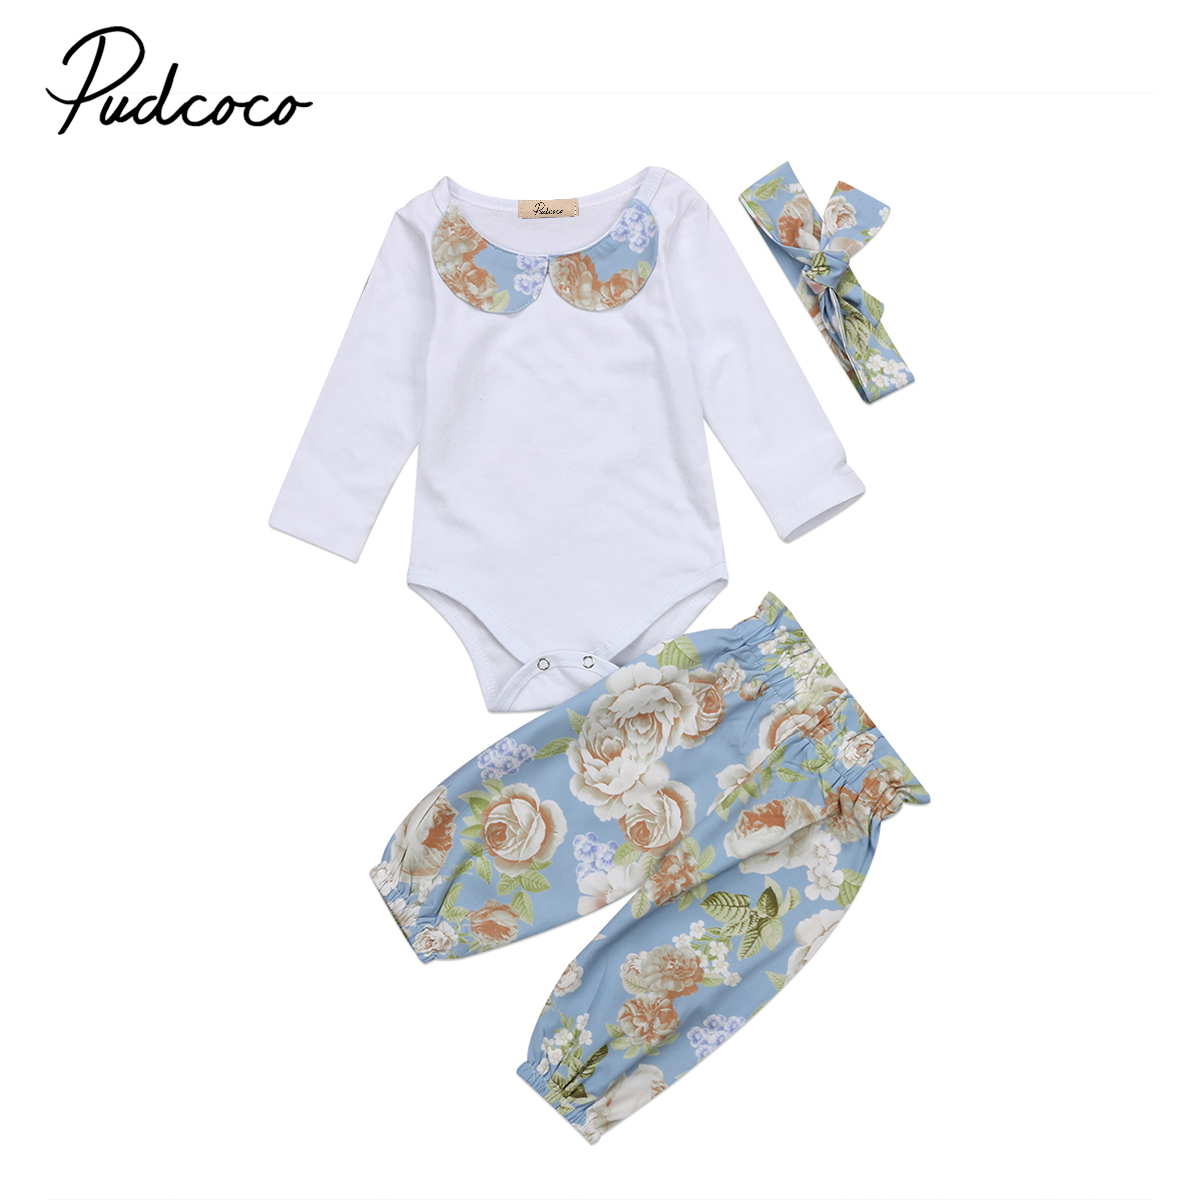 3Pcs Adorable Floral Baby Girl Clothes Newborn Kids Baby Girls Long Sleeve Romper Flower Pants Flower Outfits Set Clothes